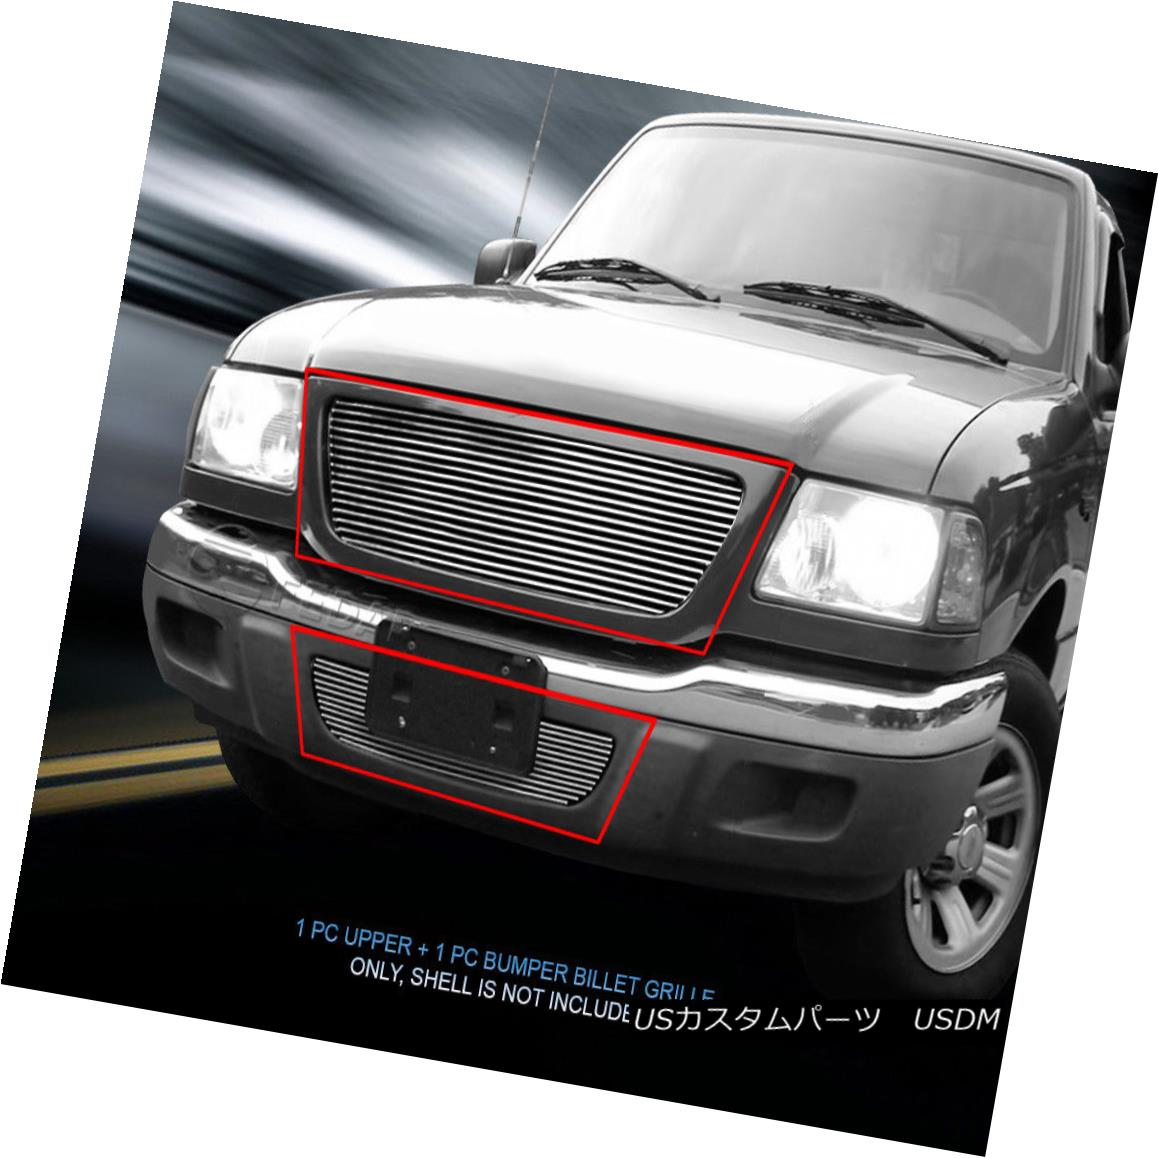 グリル Fedar Fits 01-03 Ford Ranger XL 2WD/XLT 2WD Combo Polished Billet Grille Ford Ranger XL 2WD / XLT 2WD Combo Polished Billet Grille